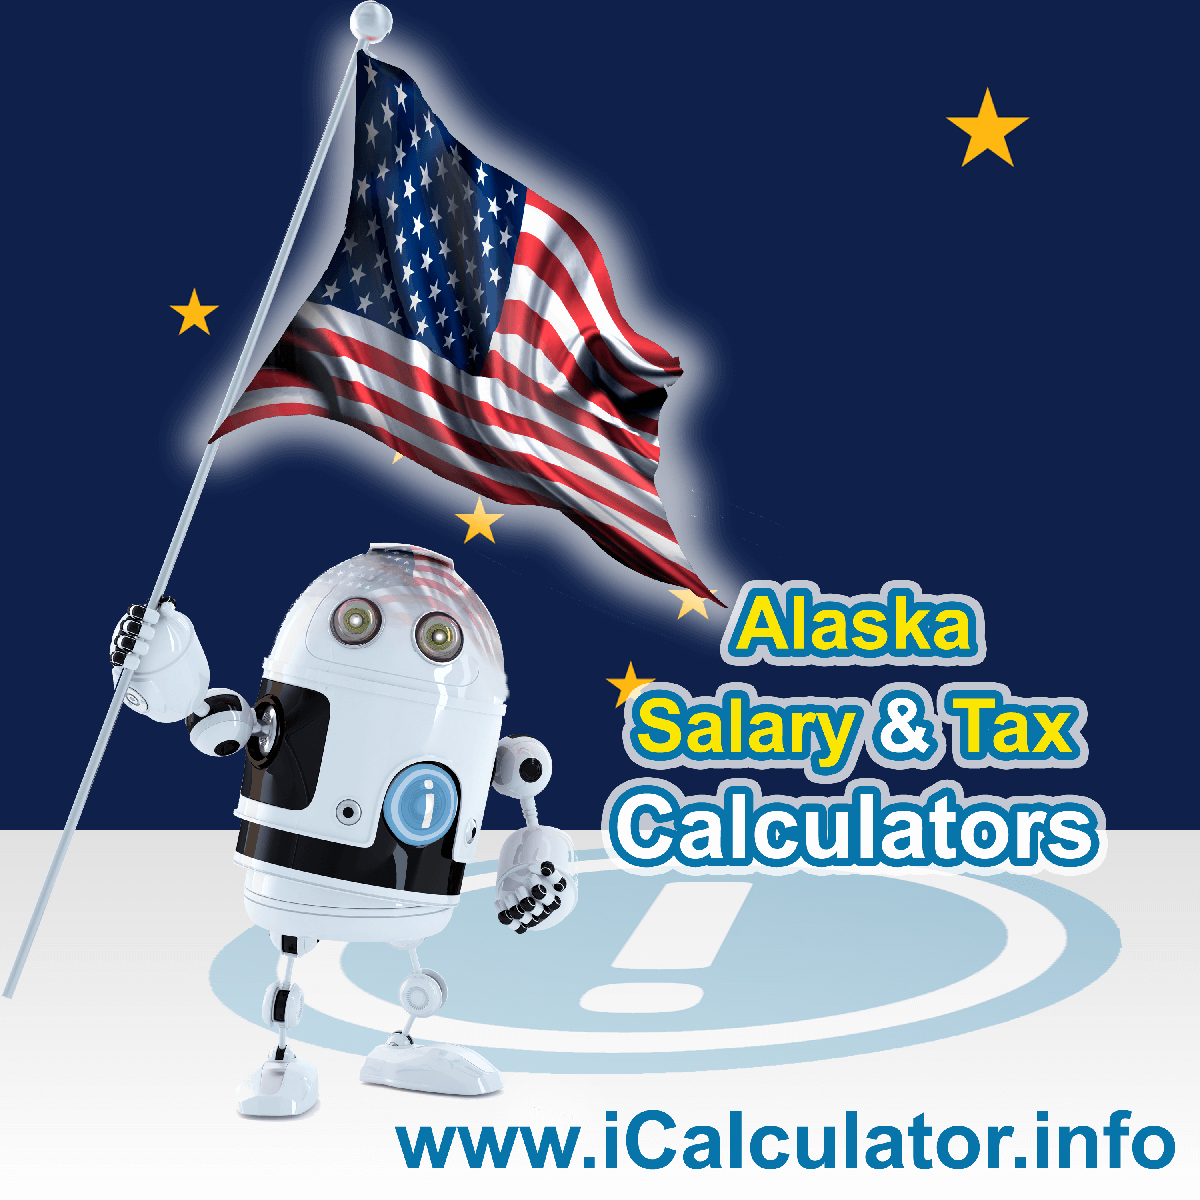 Alaska Salary Calculator 2021 | iCalculator™ | The Alaska Salary Calculator allows you to quickly calculate your salary after tax including Alaska State Tax, Federal State Tax, Medicare Deductions, Social Security, Capital Gains and other income tax and salary deductions complete with supporting Alaska state tax tables